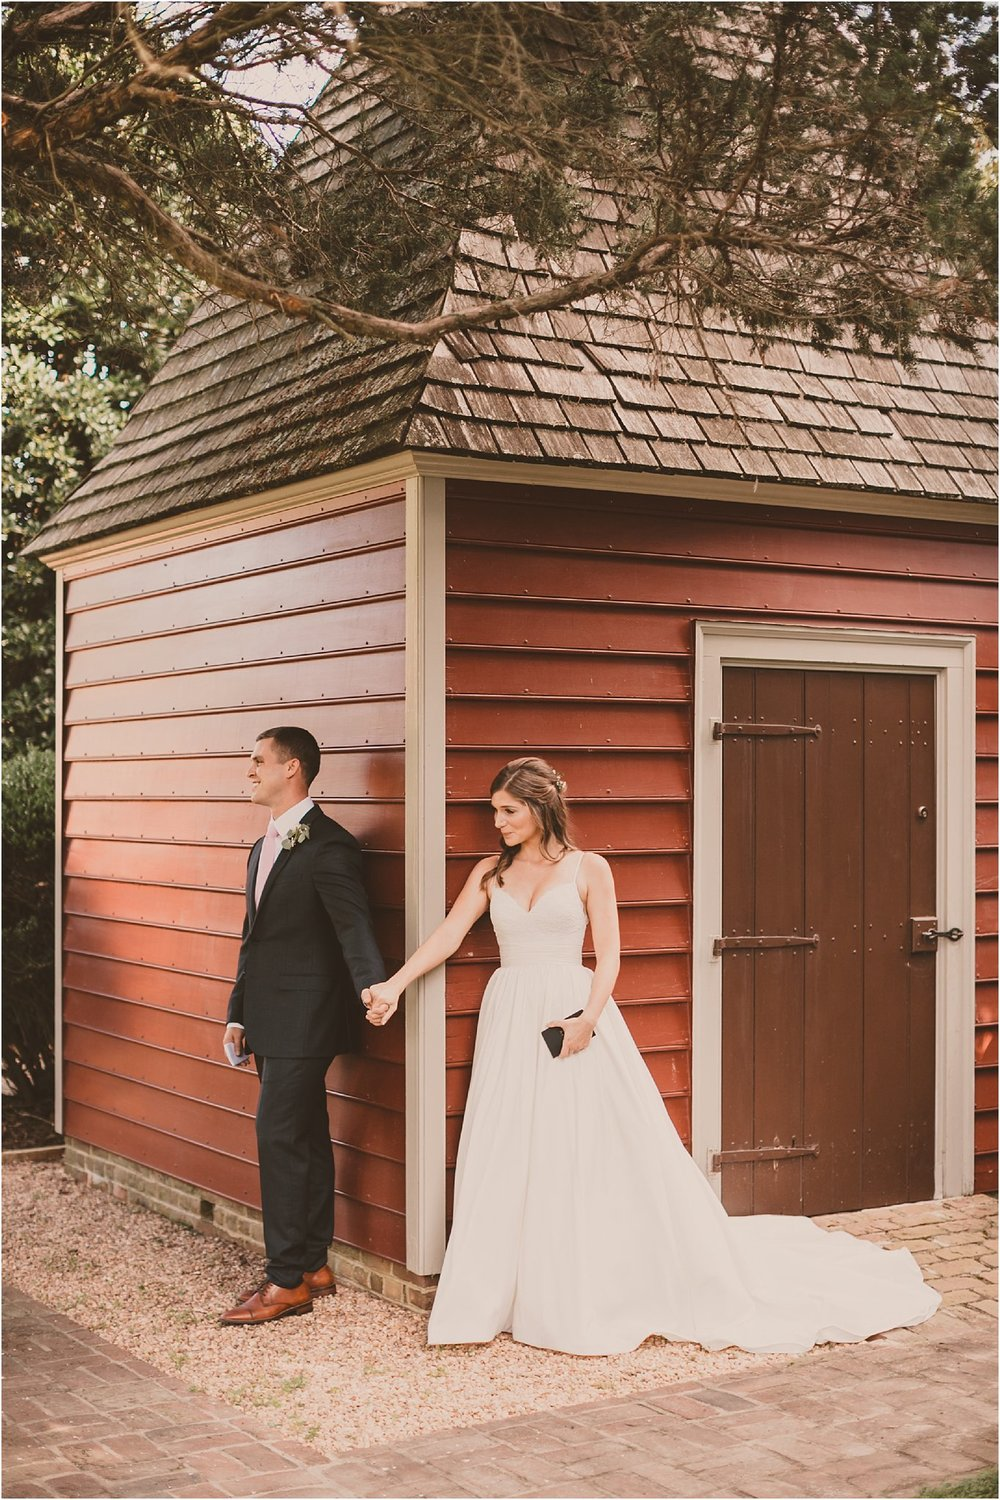 PattengalePhotography_BohoWedding_RichmondVirginia_Photographer_SevenSprings_Manor_Estate_Wedding_Hannah&Thomas_Elegant_Fall_Bohemian_blush_gold_farm__0138.jpg